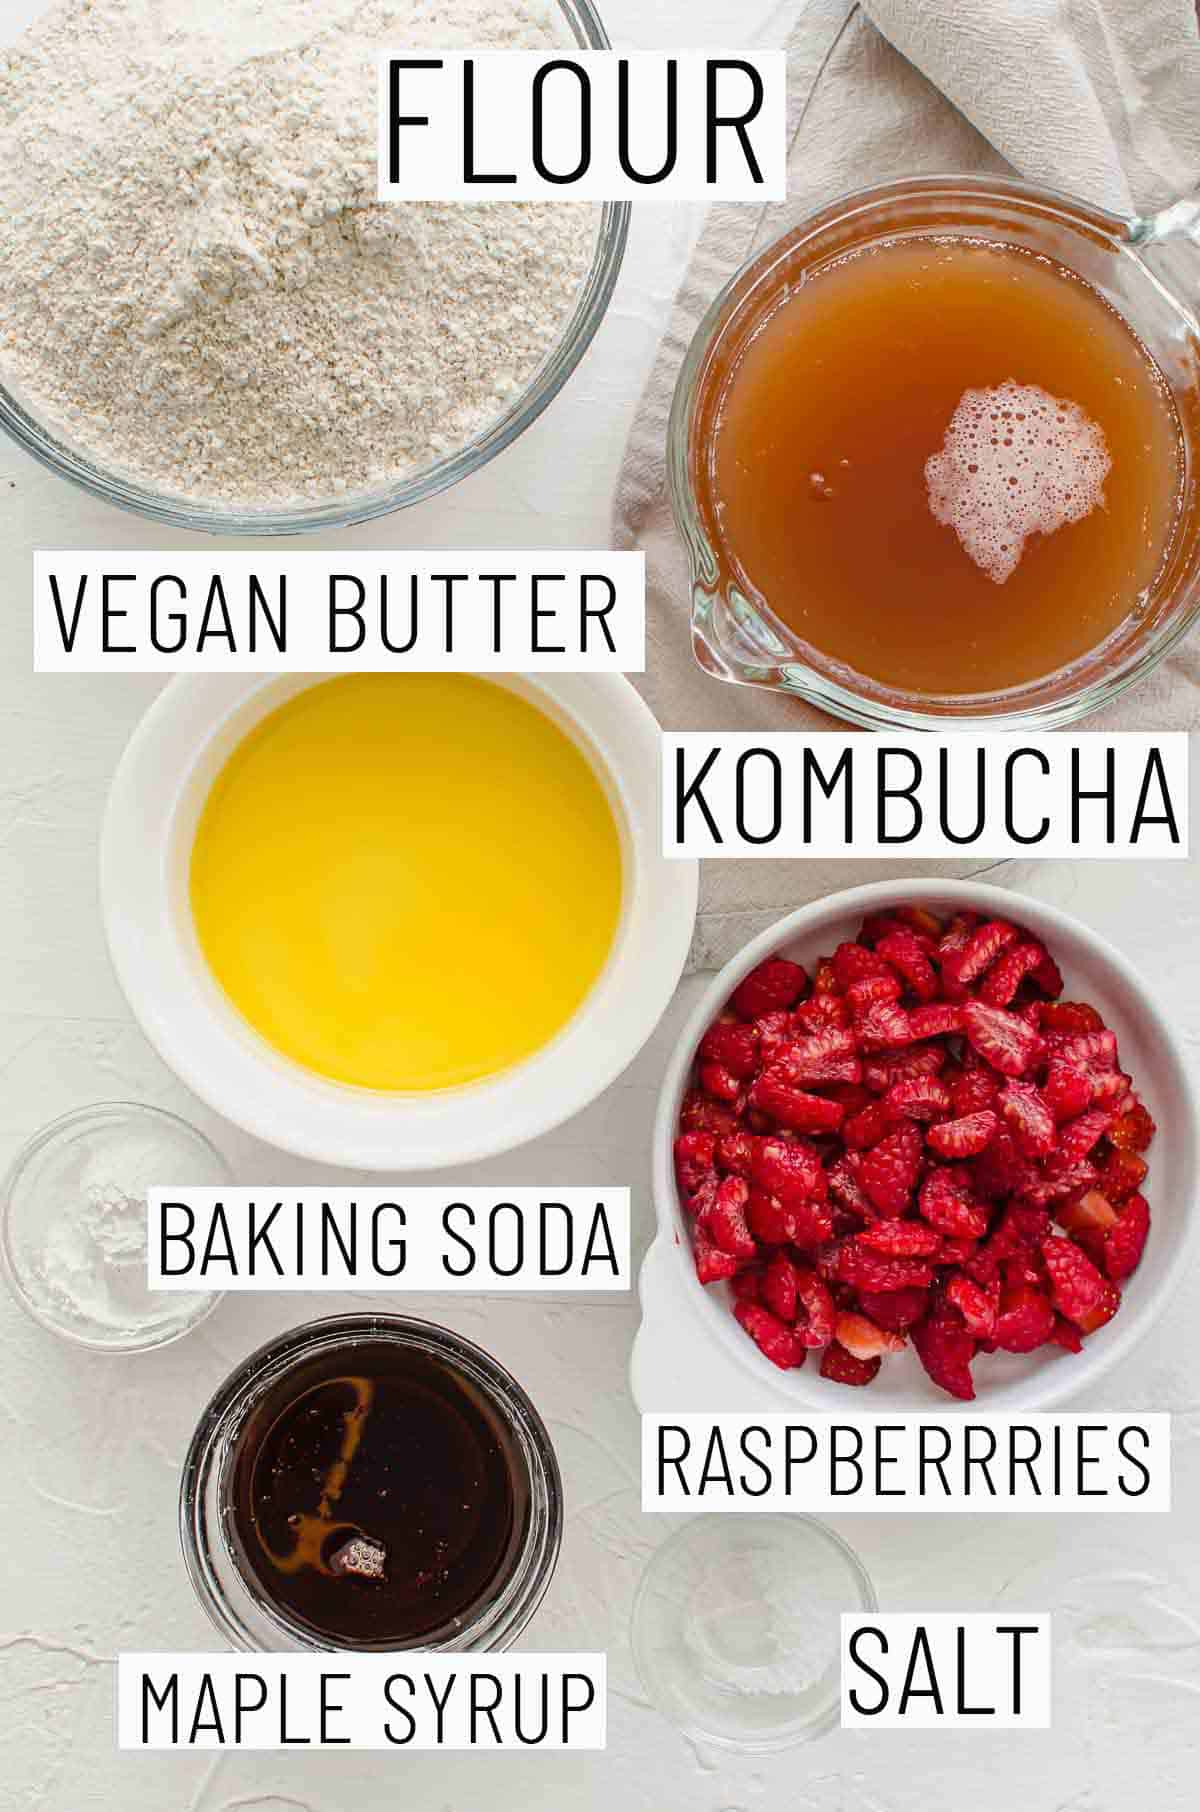 Flat lay images showing portioned recipe ingredients including kombucha, vegan butter, flour, raspberries, maple syrup, baking soda, and salt].